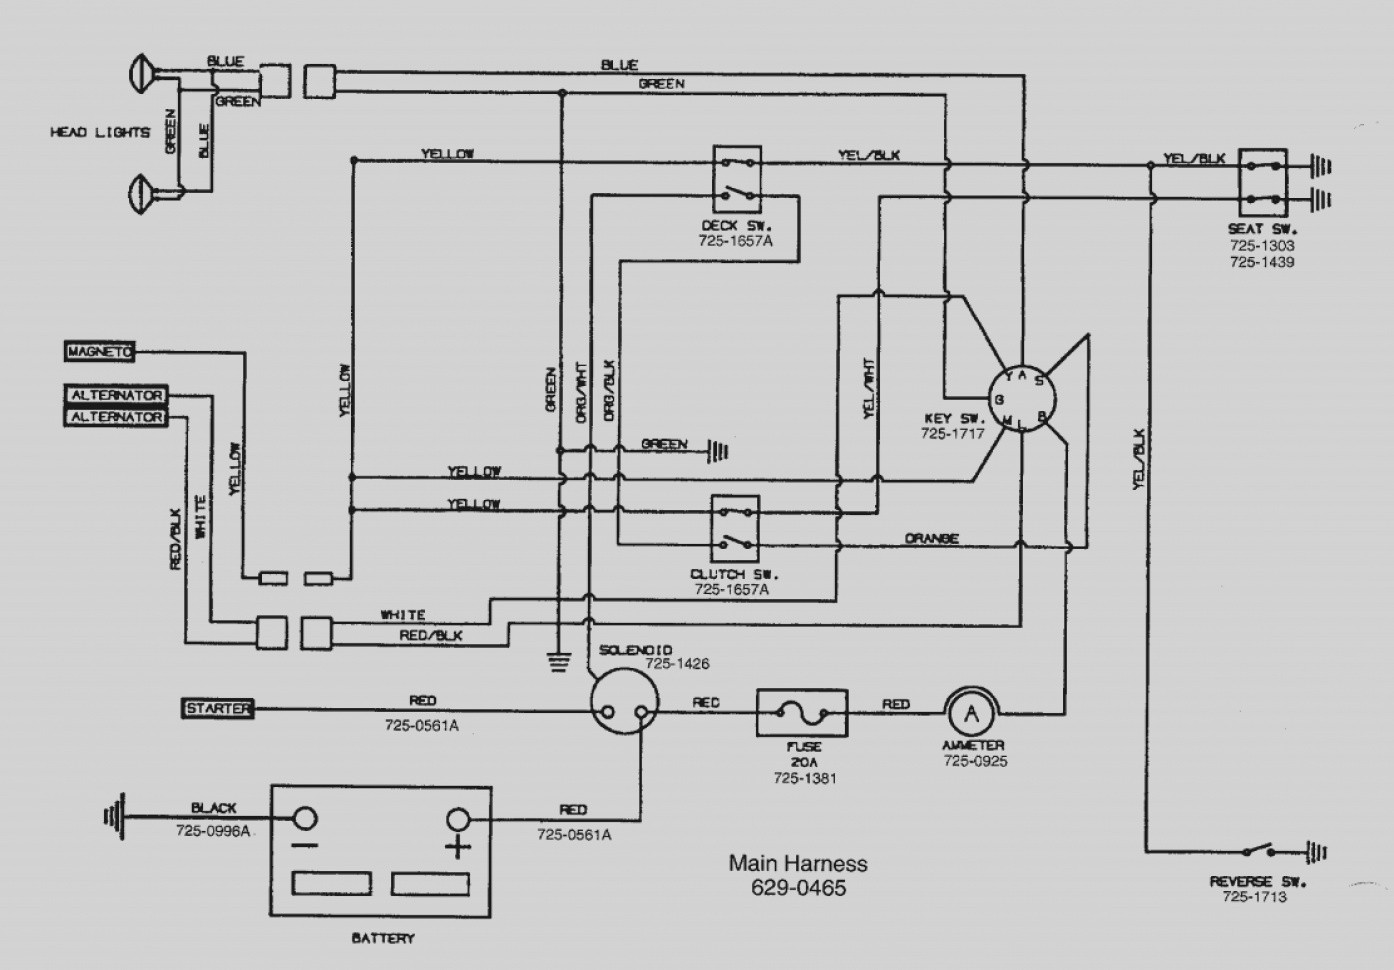 Craftsman Lawn Tractor Wiring Diagram Basic Schematic. Mtd 600 Wiring Diagram Schematics Craftsman Chainsaw Lawn Tractor. Wiring. Husqvarna Electric Pto Switch Wiring Diagram At Scoala.co